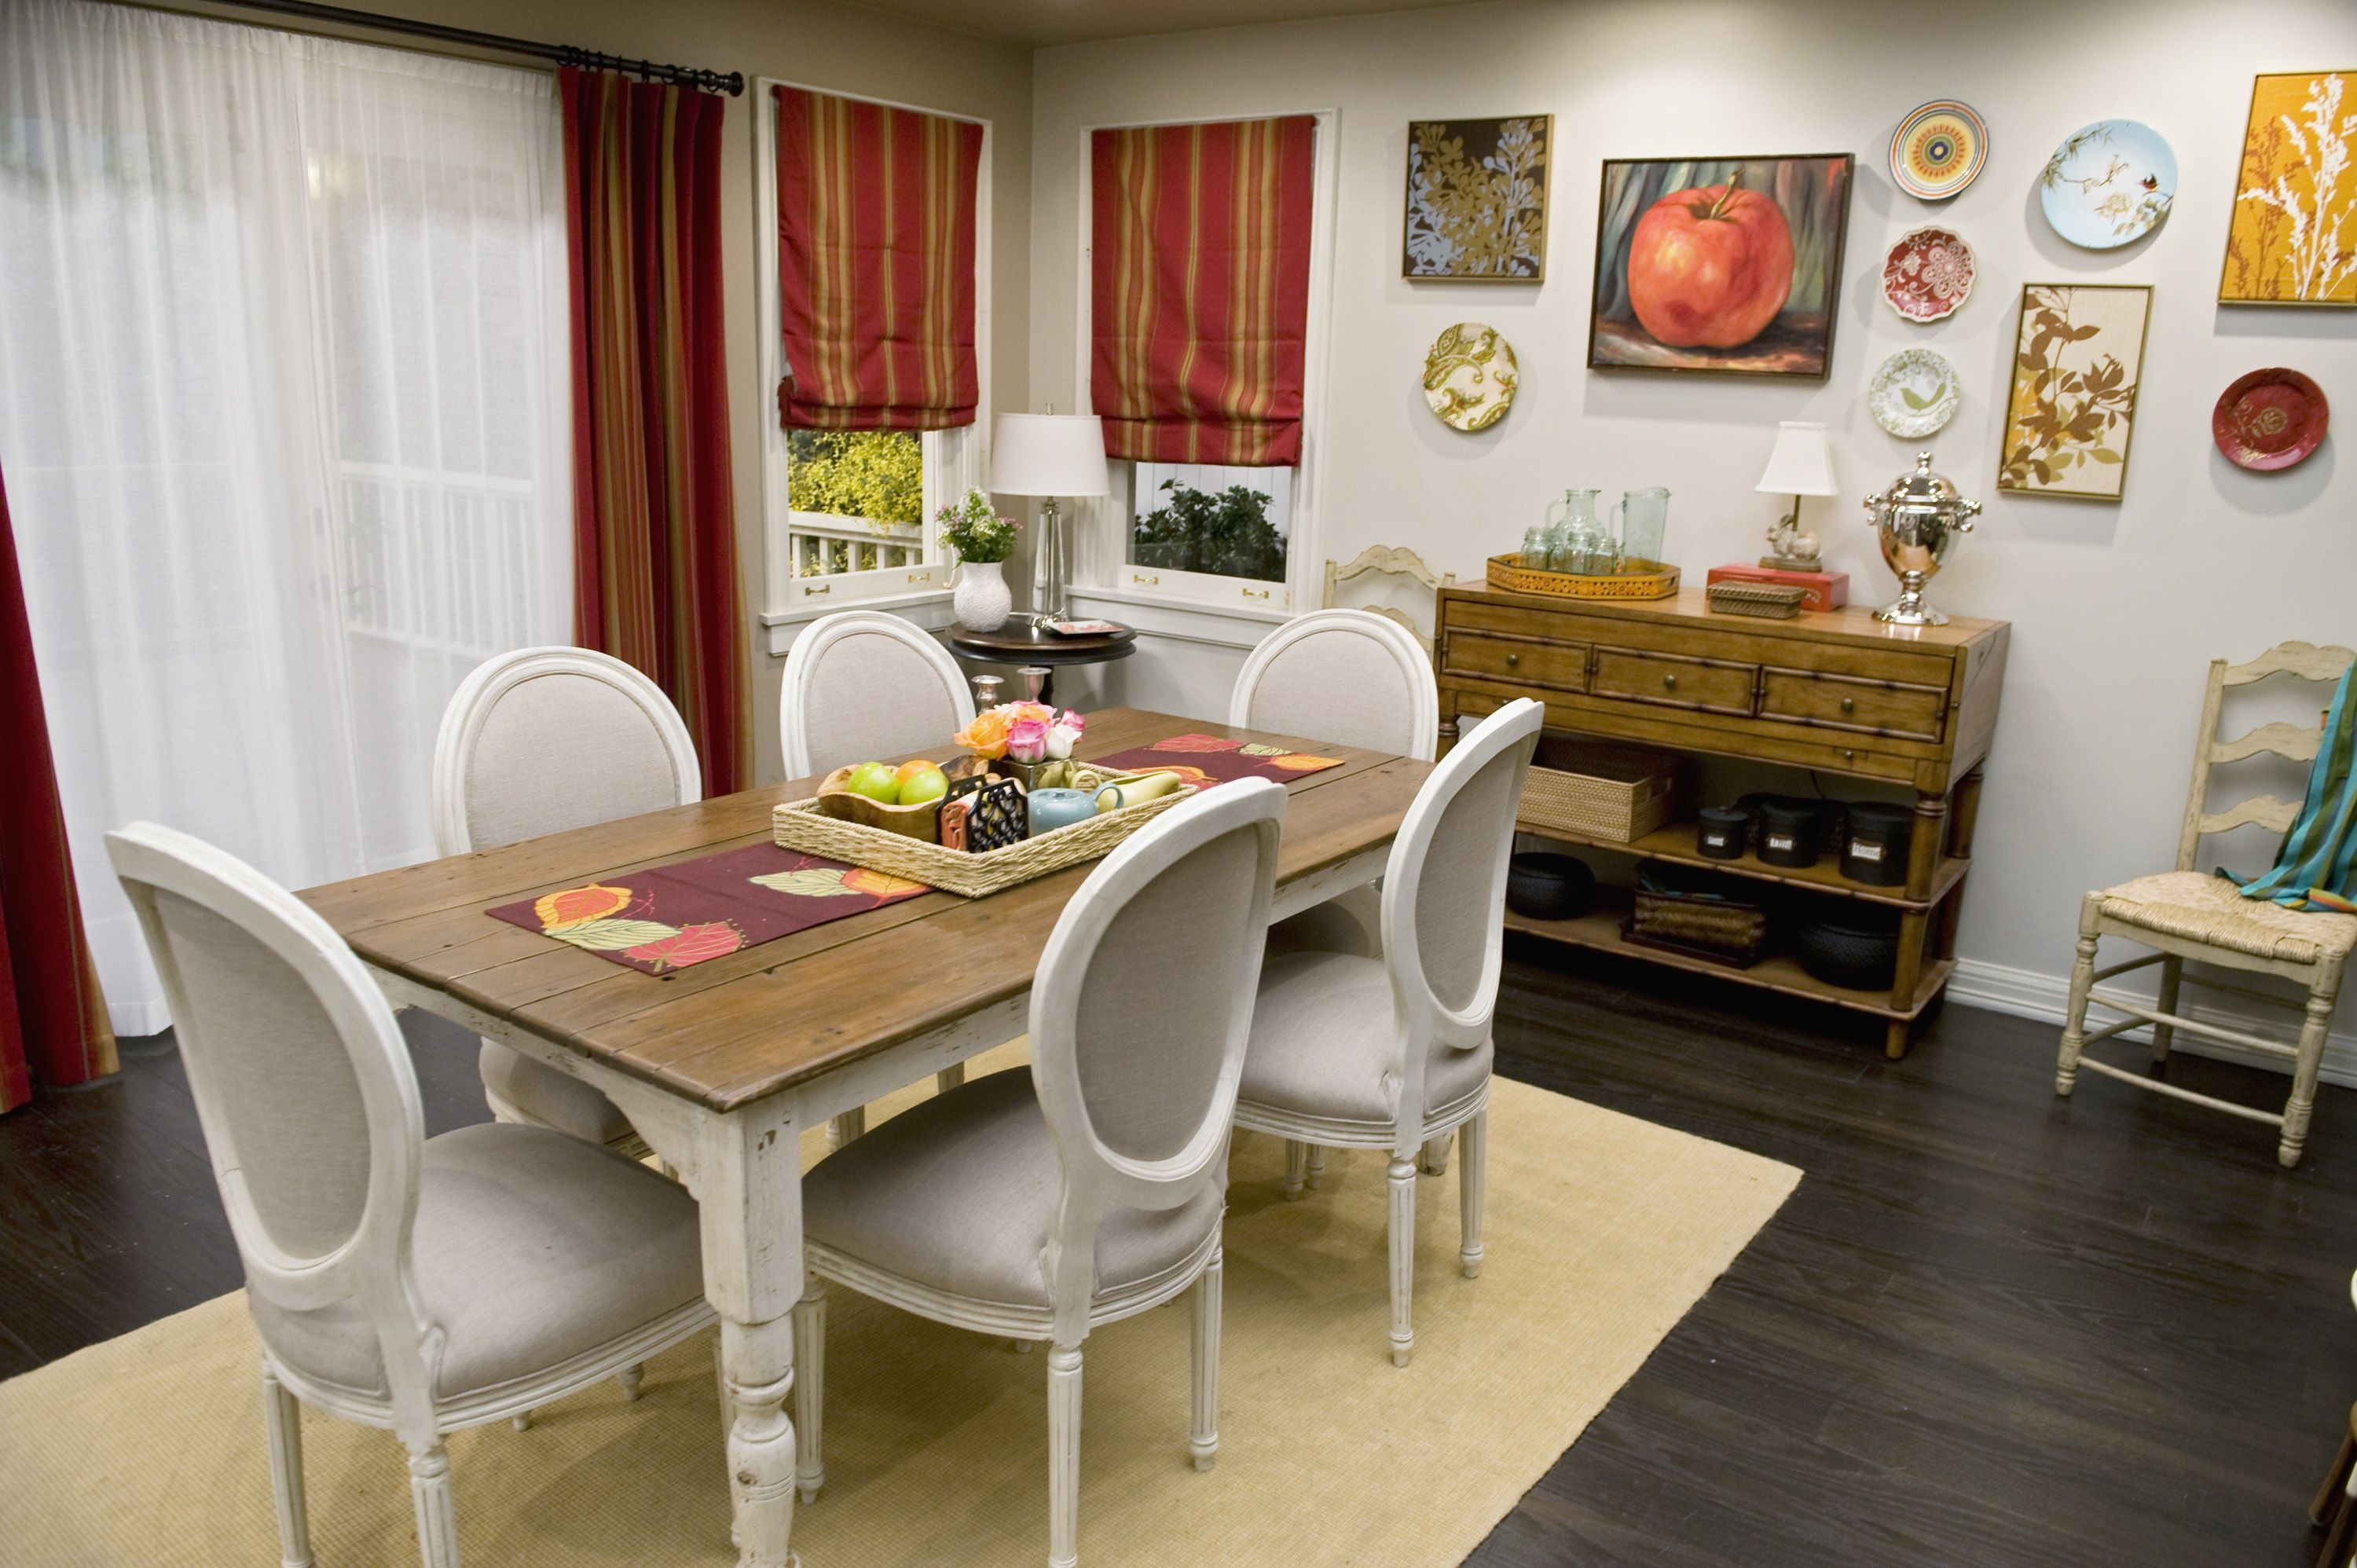 Modern family room furniture - Dining Room From Modern Family Set Like The Wall Eclectic Mix Of